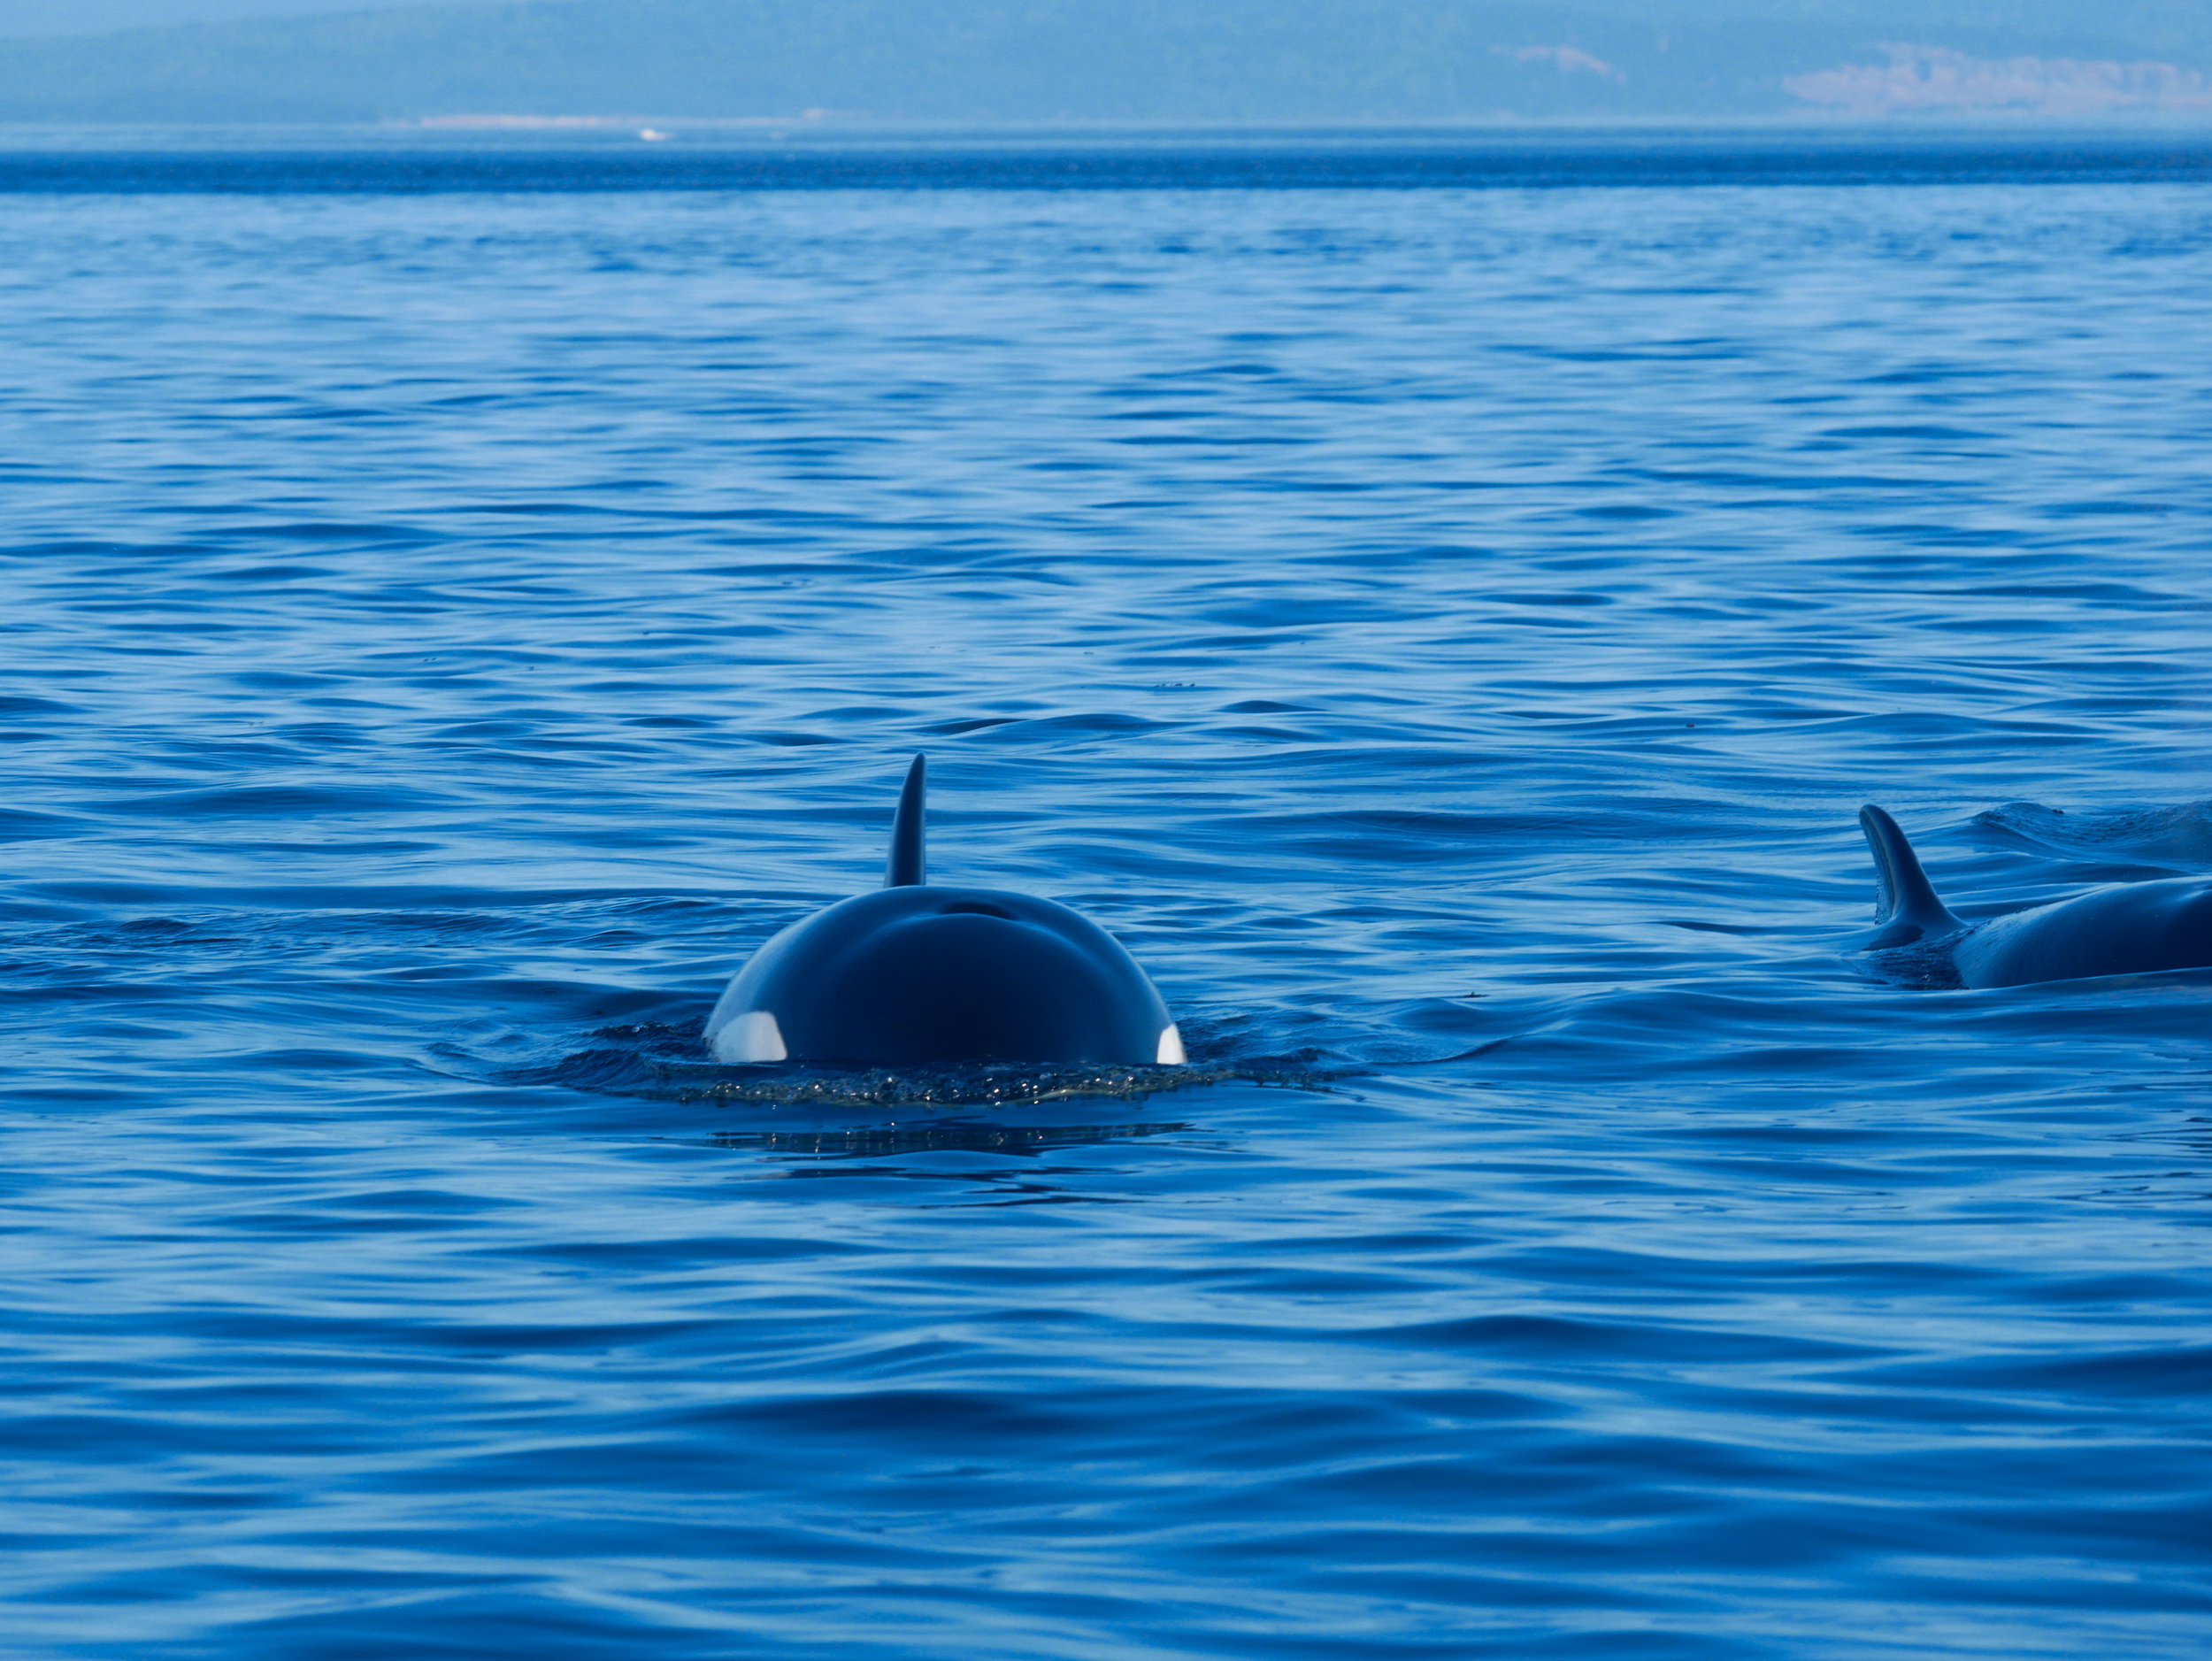 Eyespots, blowhole, and dorsal fin all in one shot! Unlike humpbacks, orcas only have one blowhole. Photo by Val Watson.